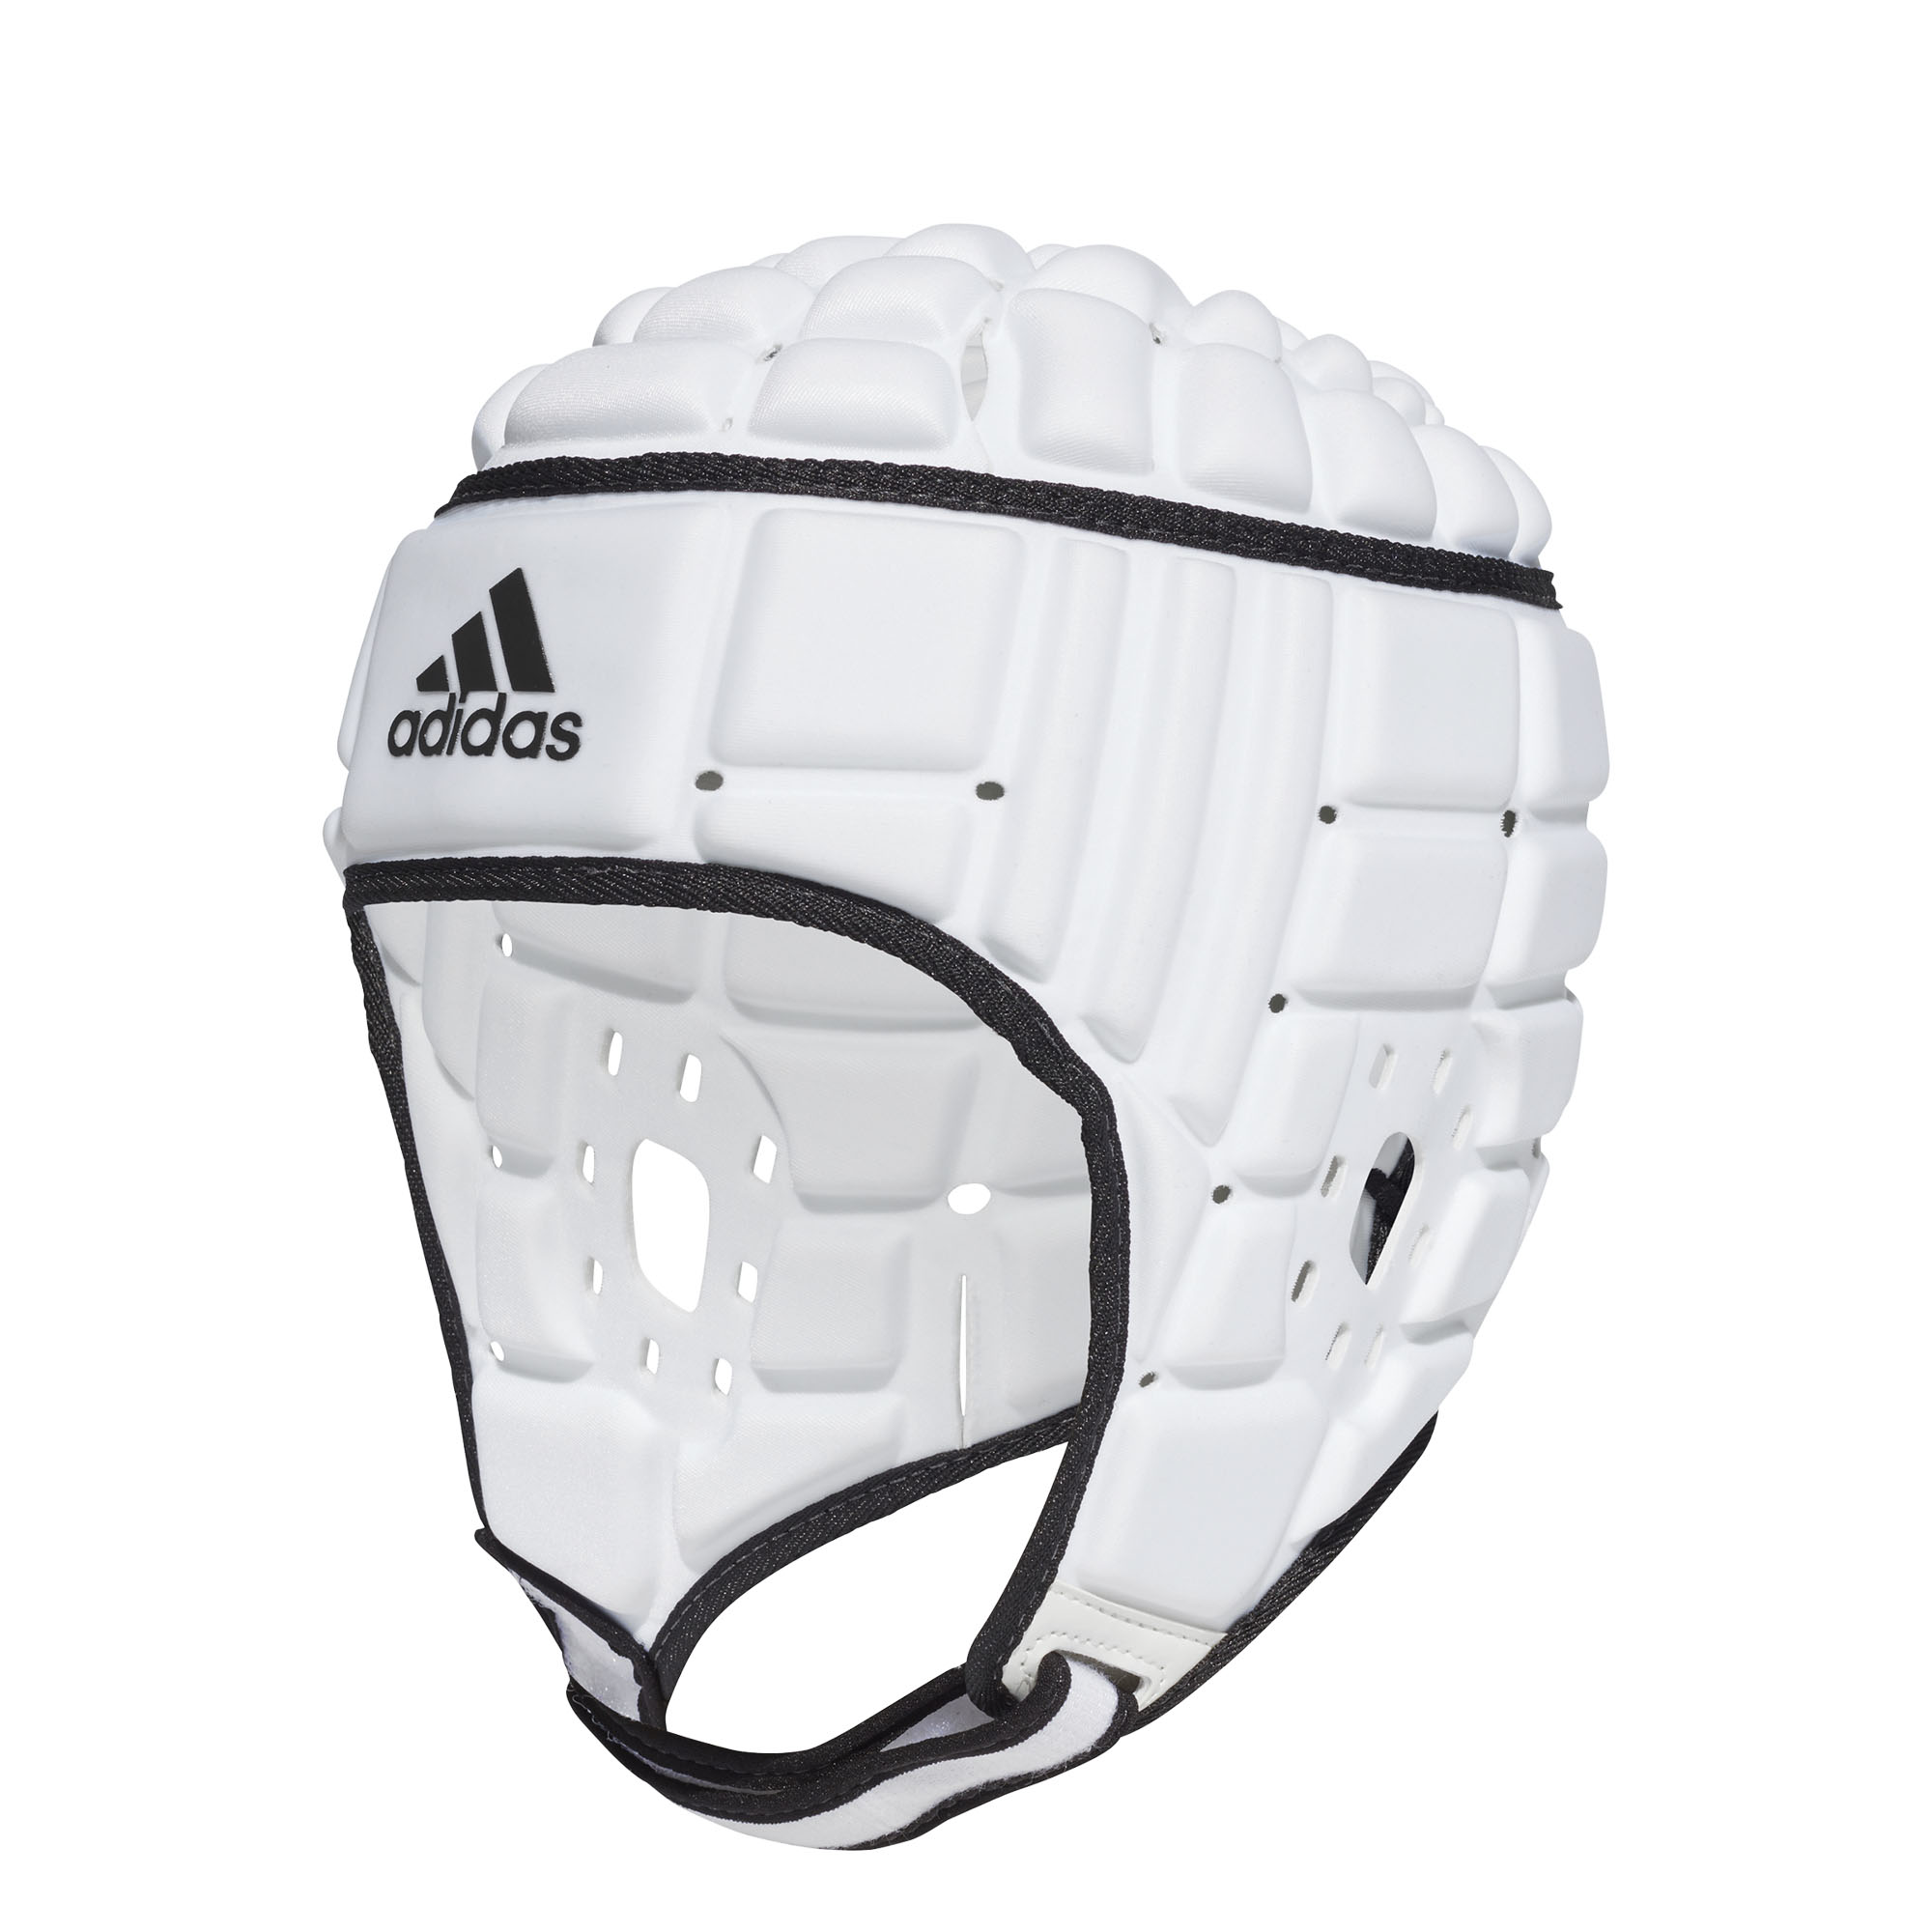 8ba981d7d70 Details about adidas Rugby Headguard Scrum Cap Head Protection White